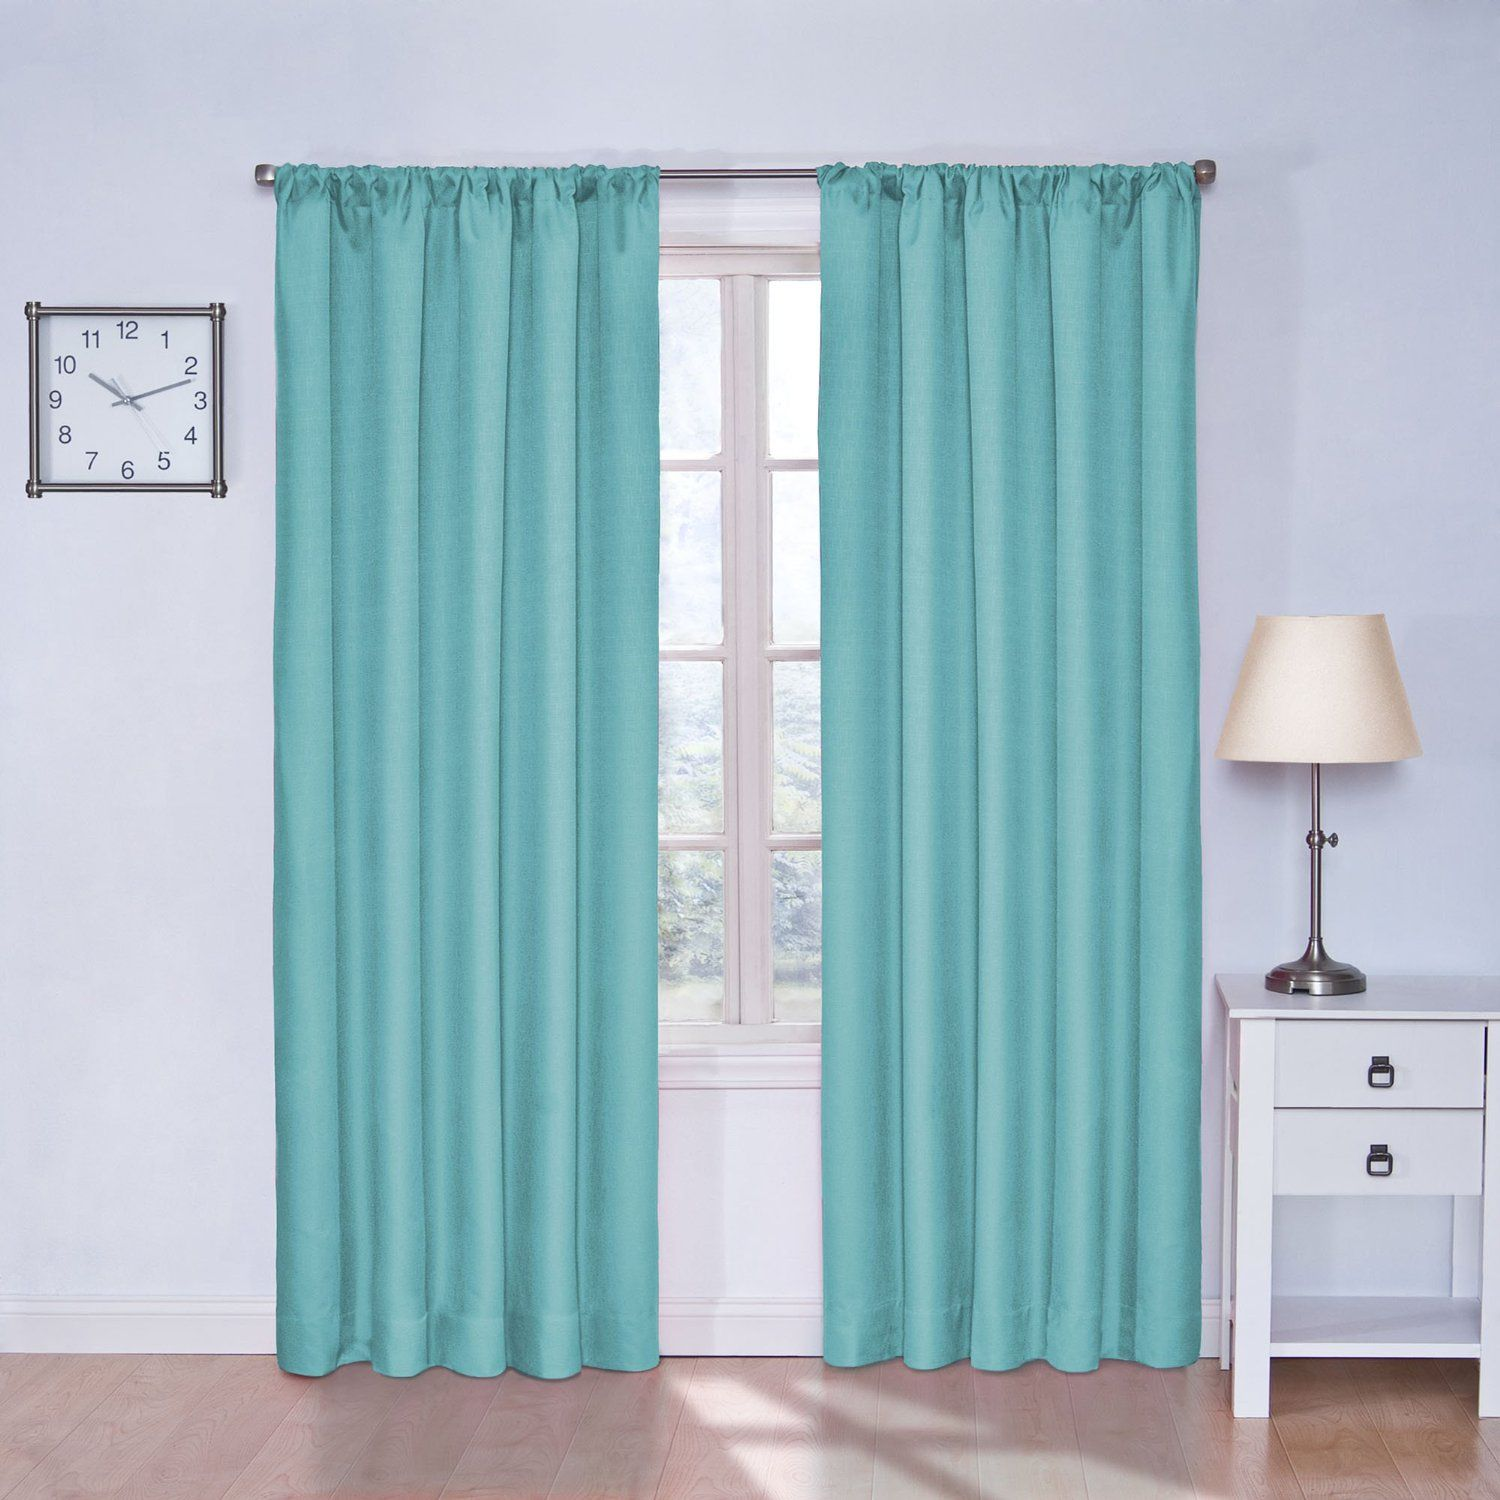 sears curtains jcpenney amazon valances blind country ideas blinds bathroom curtain blackout image luxury kitchen wayfair